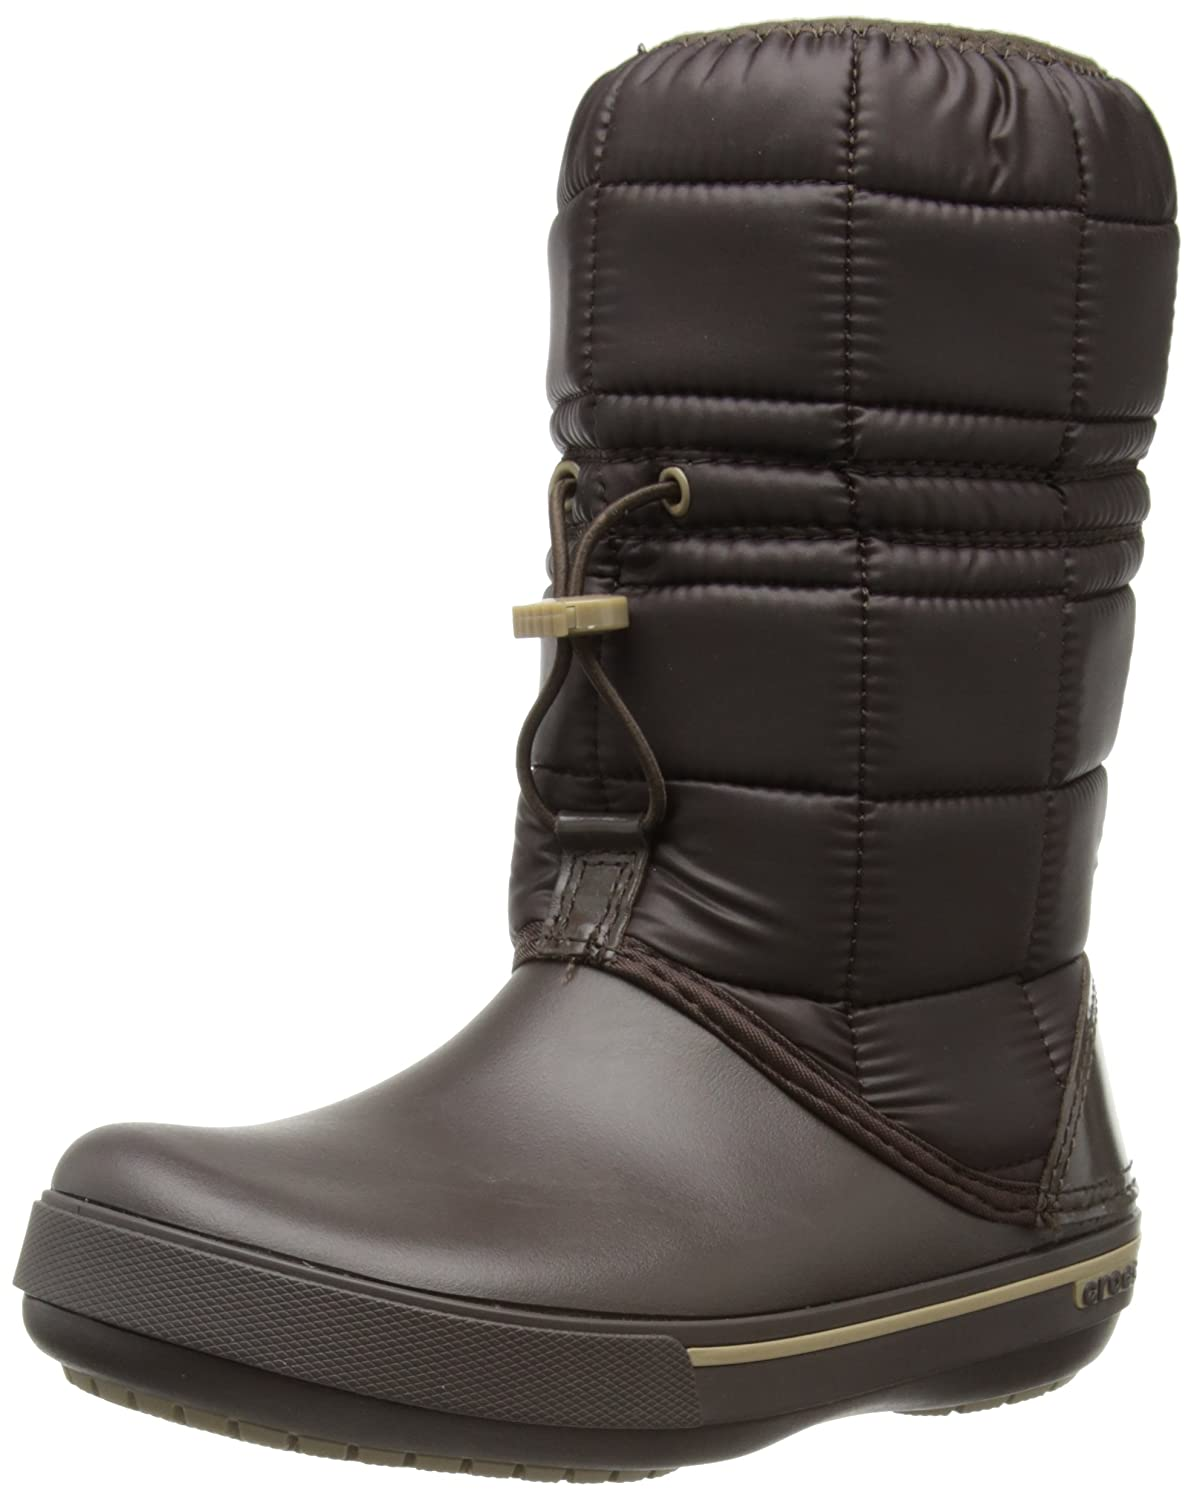 Crocs Boot Crocbandtm Winter II 5 Bottes Femme Women IwIxapP